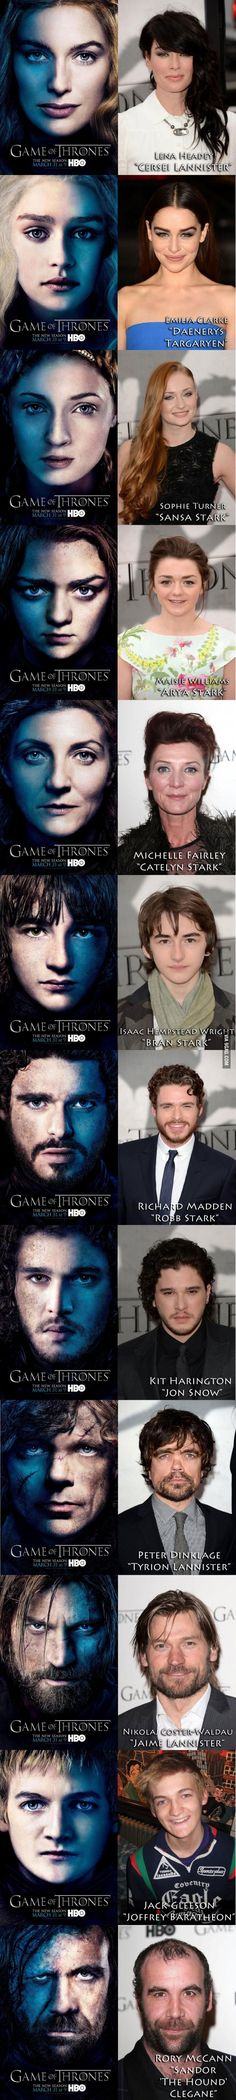 When you play a game of thrones you win or you die.